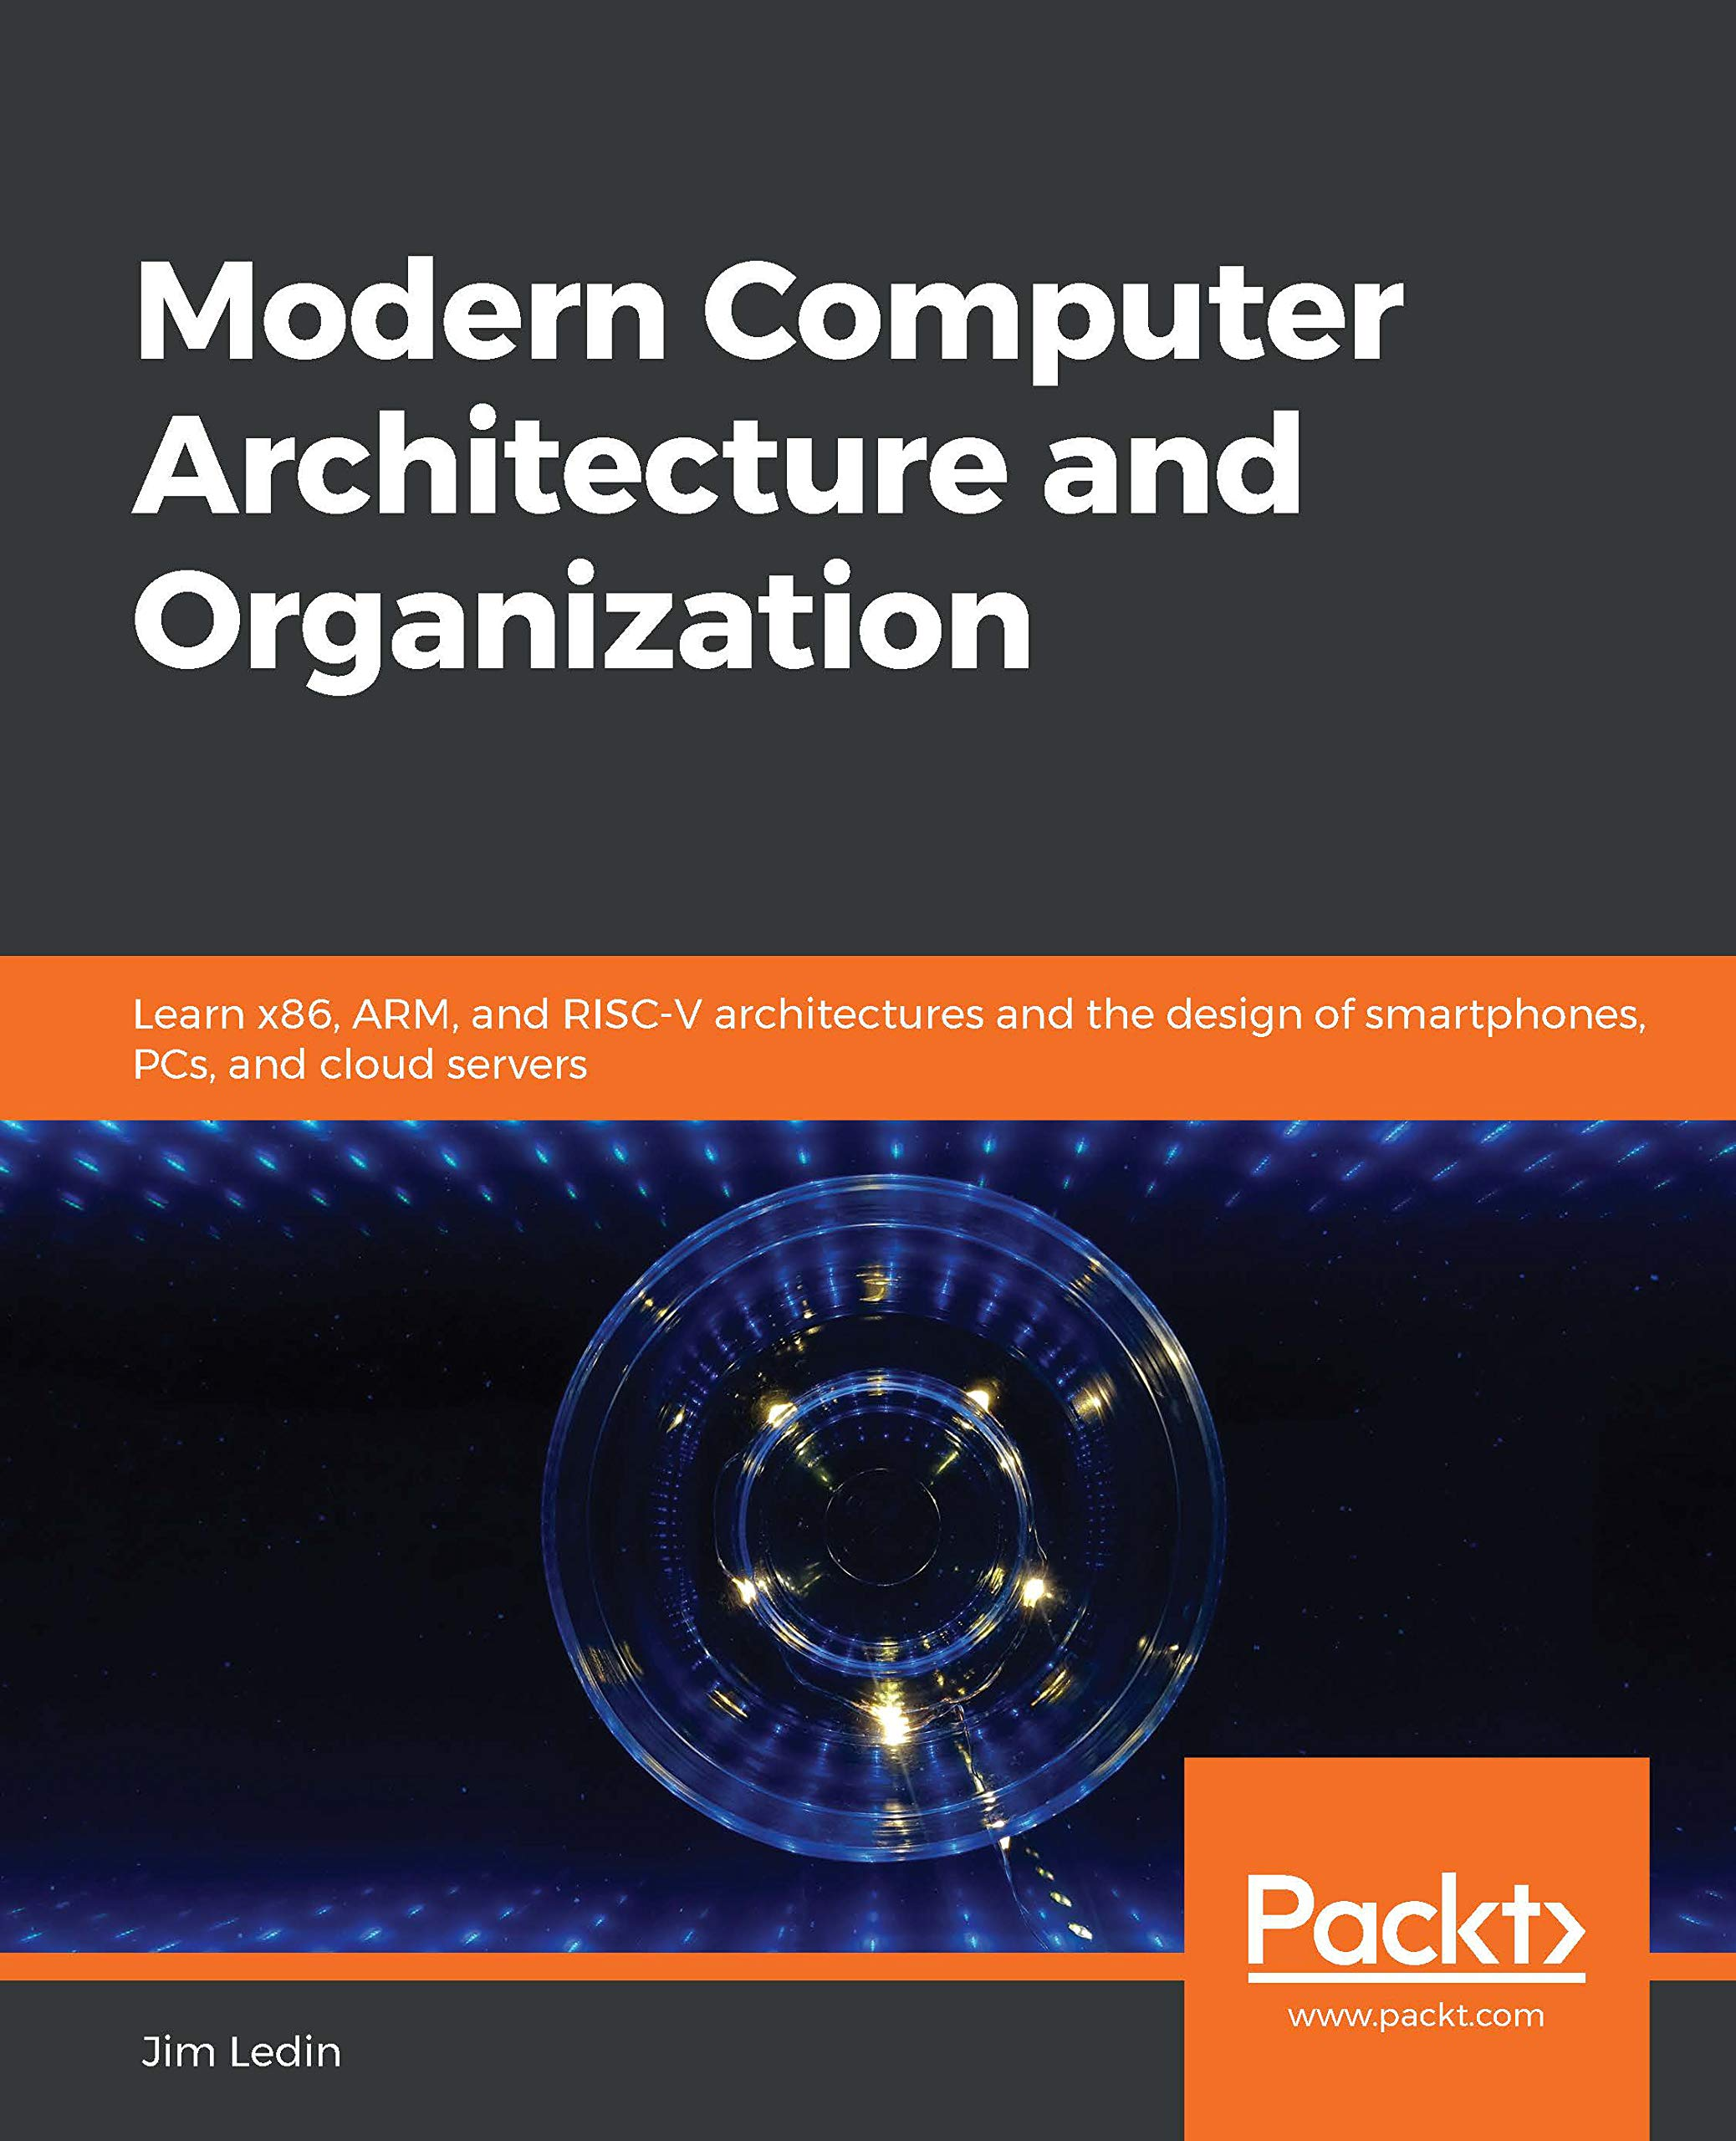 Amazon.com: Modern Computer Architecture and Organization: Learn x86, ARM,  and RISC-V architectures and the design of smartphones, PCs, and cloud  servers eBook: Ledin, Jim: Kindle Store